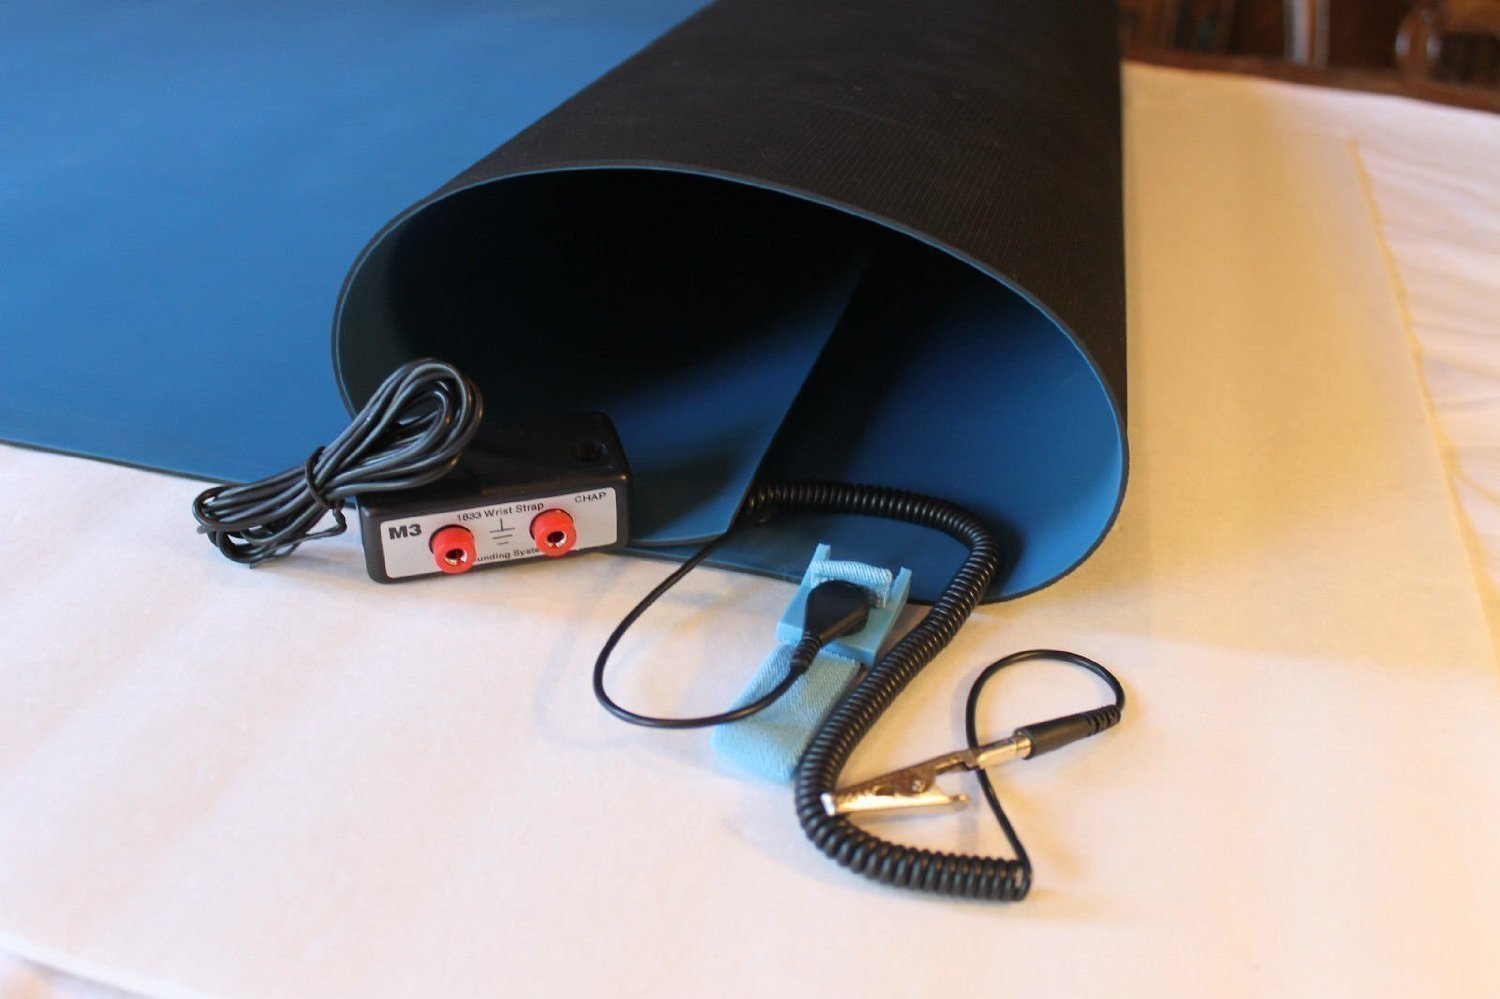 2 Layer Rubber ESD Anti-Static Hi-Temp Mat Kit with Dual Bench Grounding/Wrist Strap (30'' x 72'') - Blue